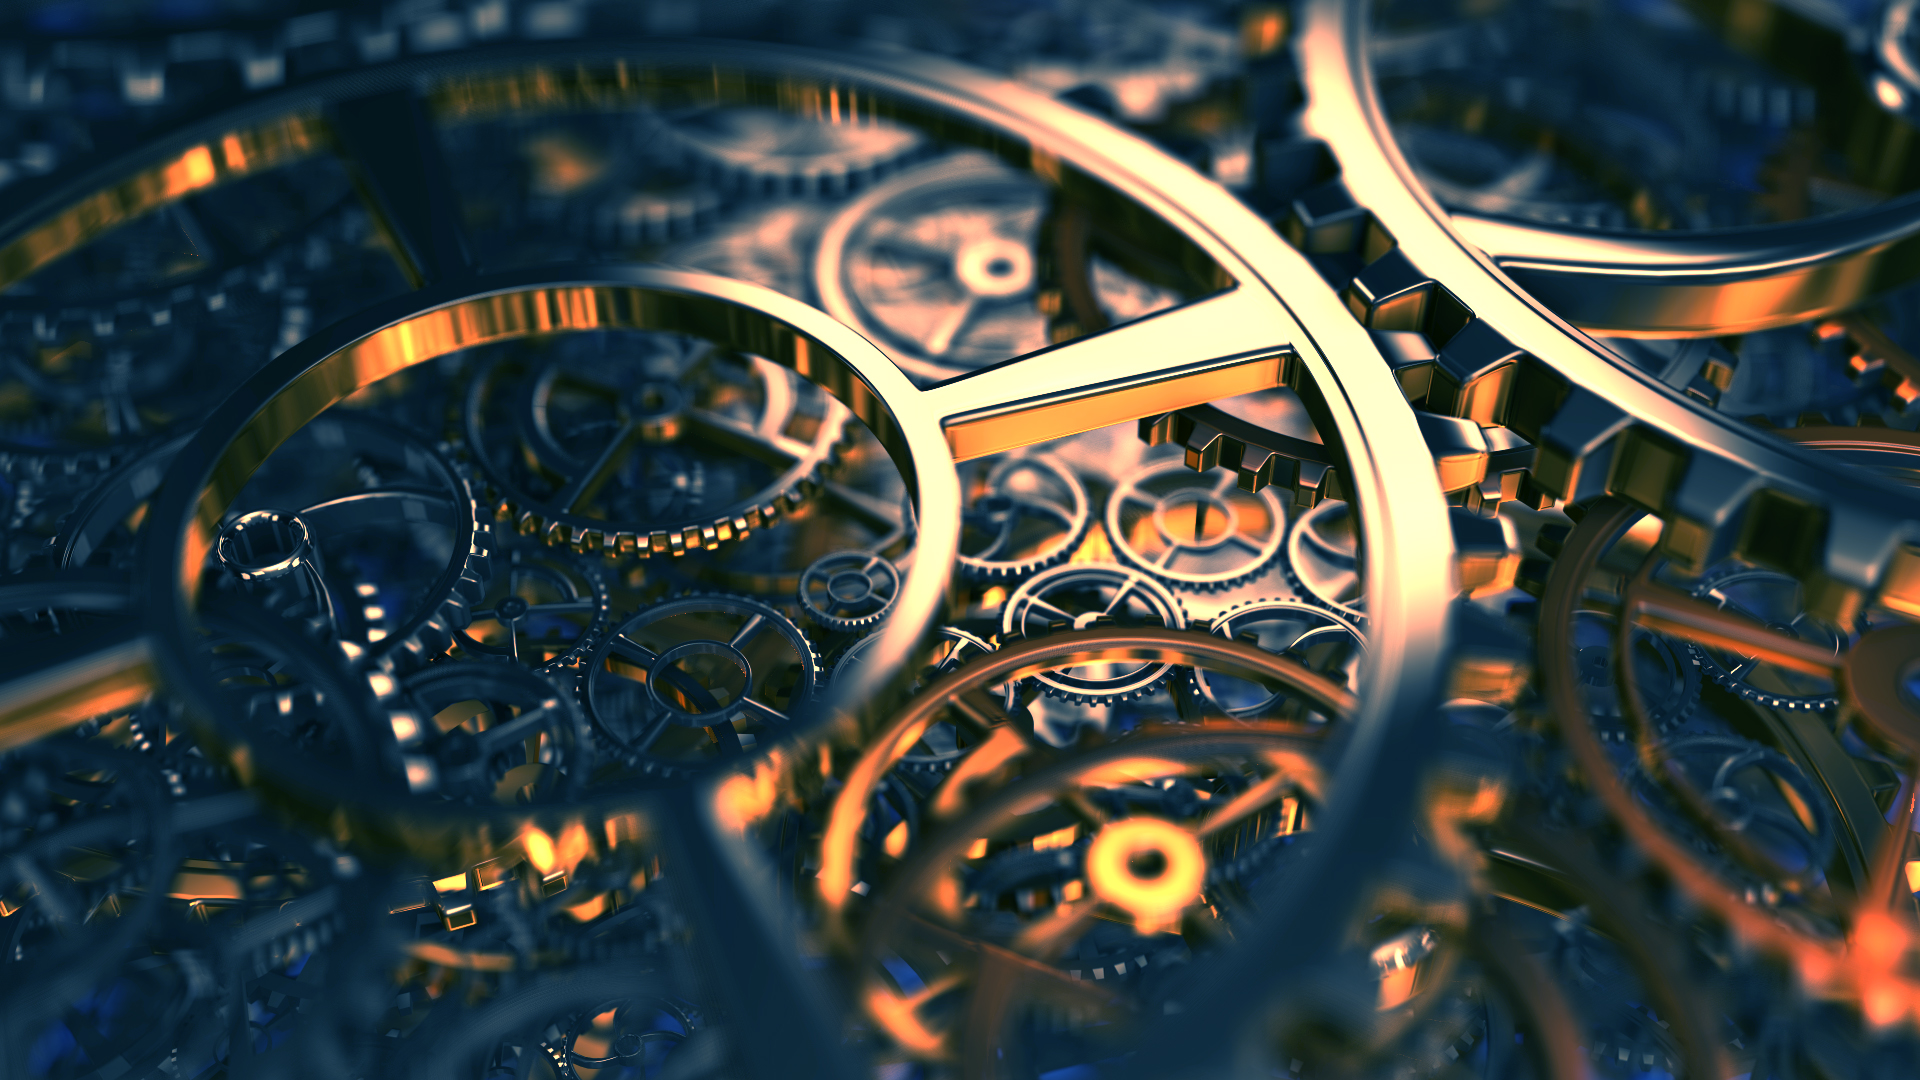 Steampunk mechanical gears reflection wallpaper 1920x1080 62242 1920x1080